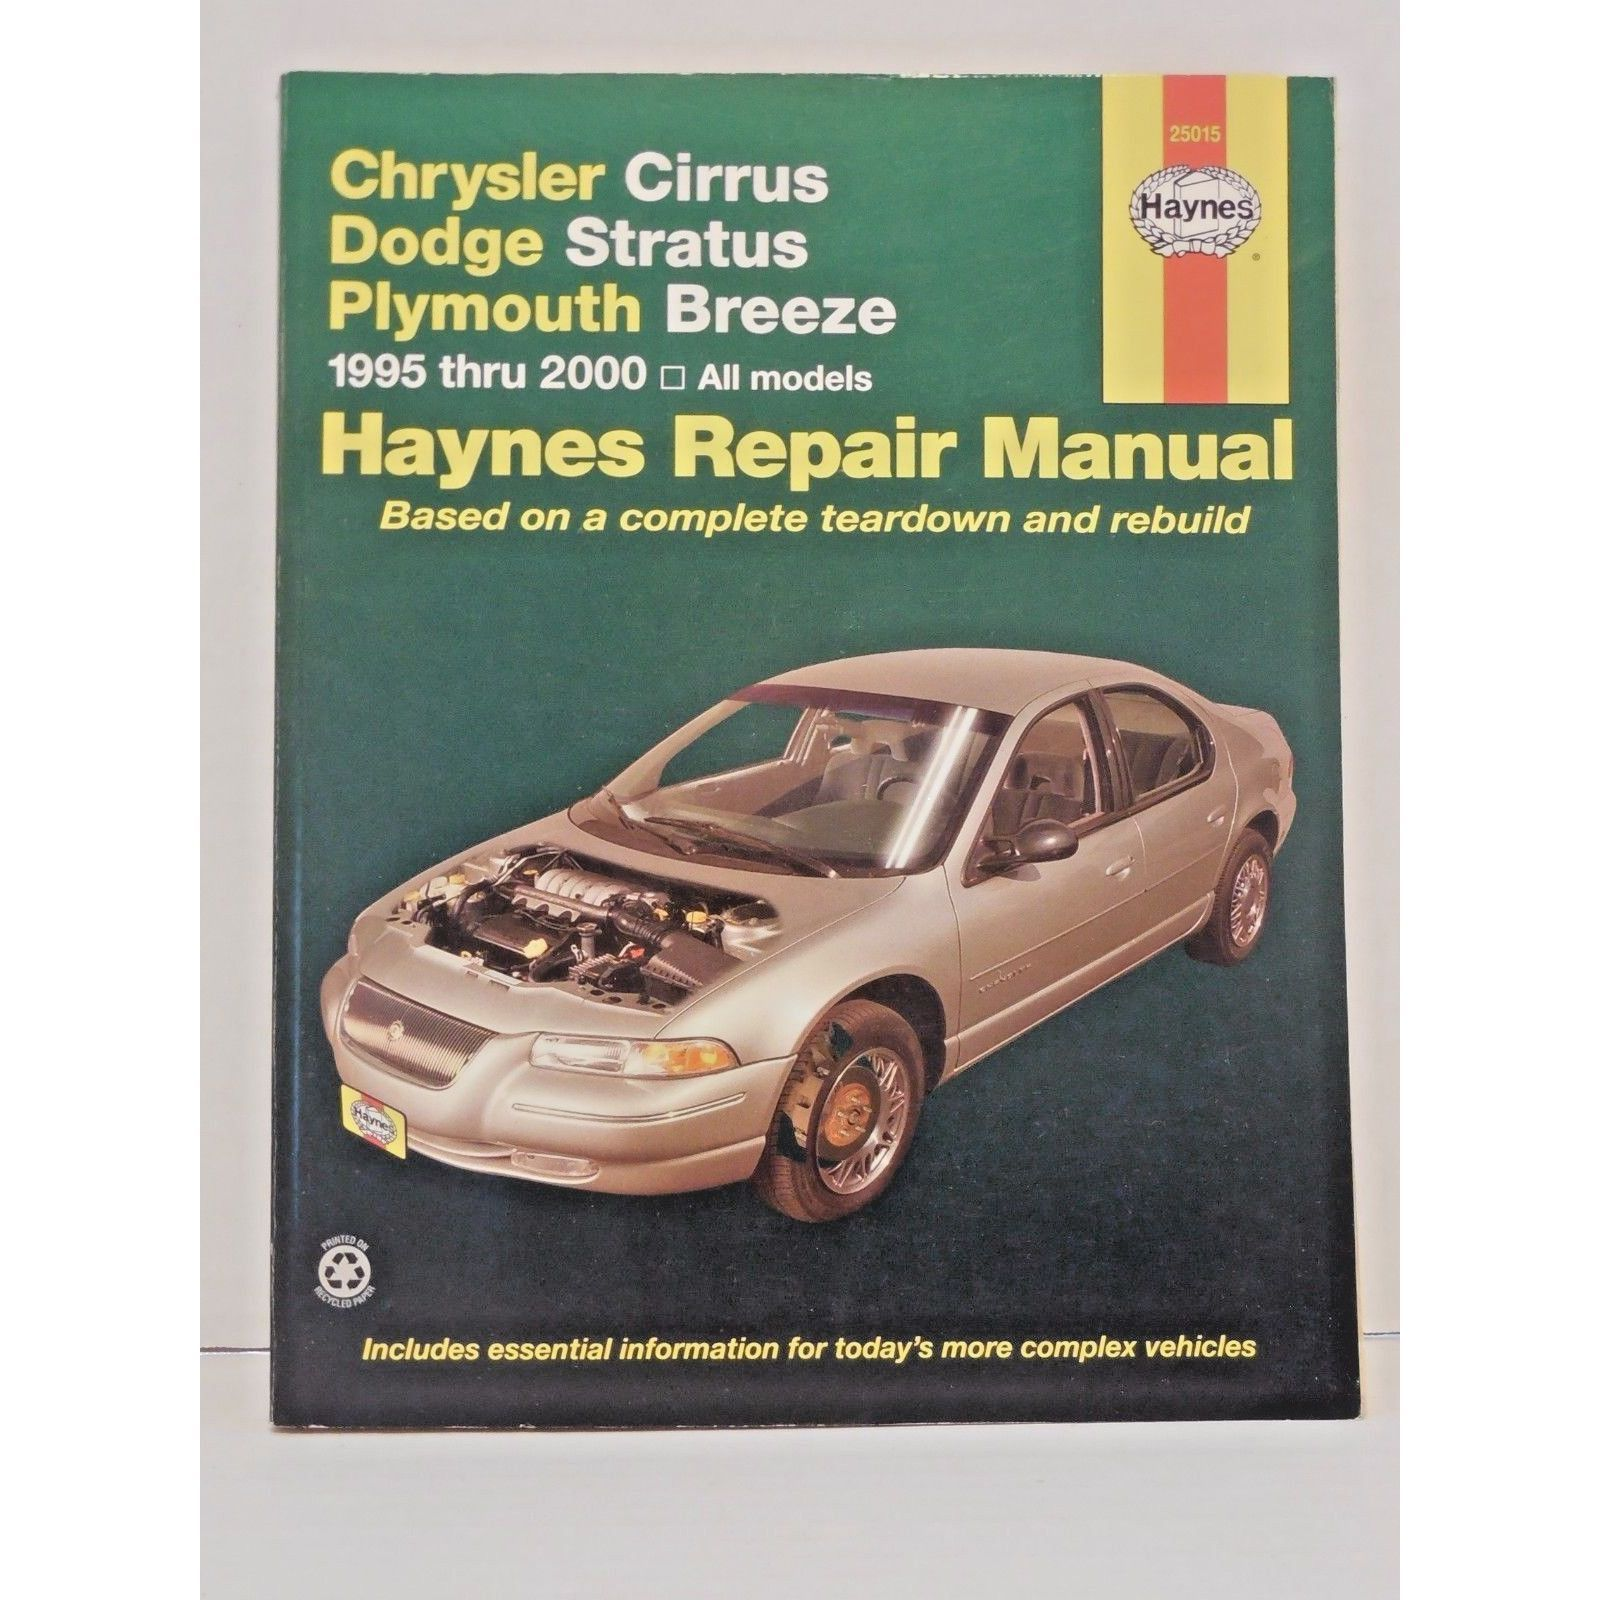 haynes repair manual 25015 chrysler cirrus dodge stratus plymouth rh  pinterest com 2000 chrysler cirrus haynes manual pdf 2000 chrysler cirrus repair  manual